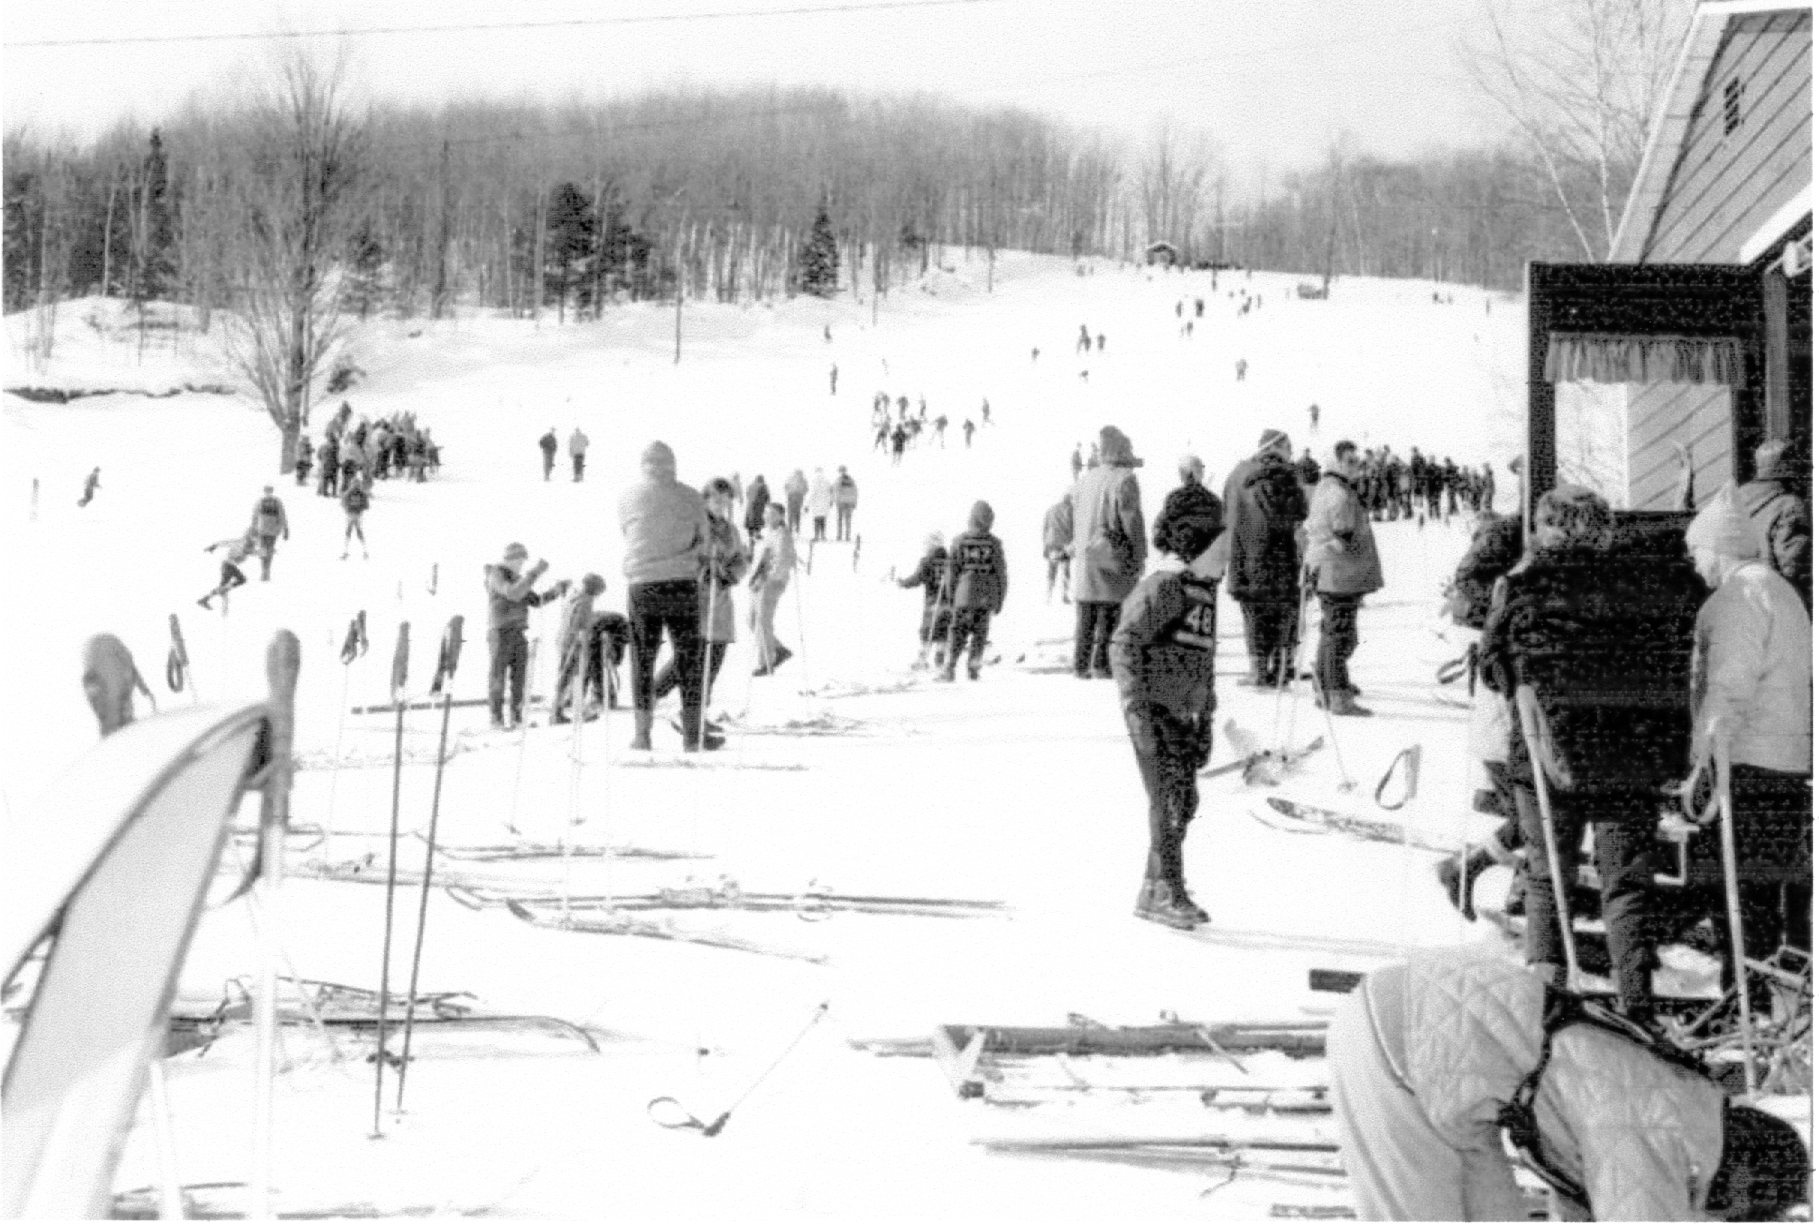 Mt. Eustis first opened in 1939, and organizers hope its rebirth will come in the winter of 2015.